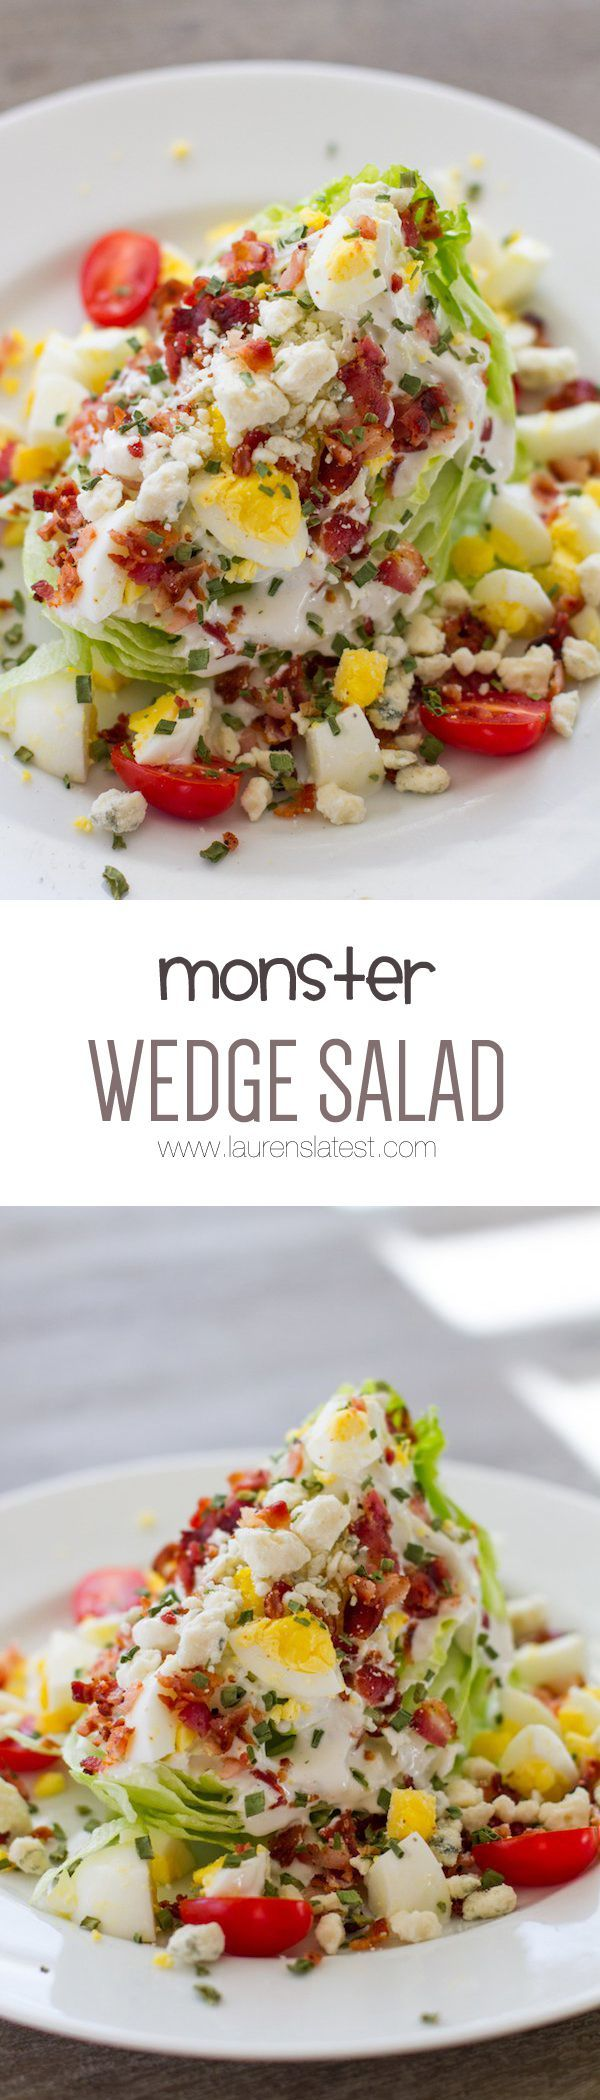 The wedge is probably one of the simplest salads you can make because you literally cut a head of lettuce into 4, drench it in some homemade dressing and throw on a bunch of toppings. And good grief its amazing.